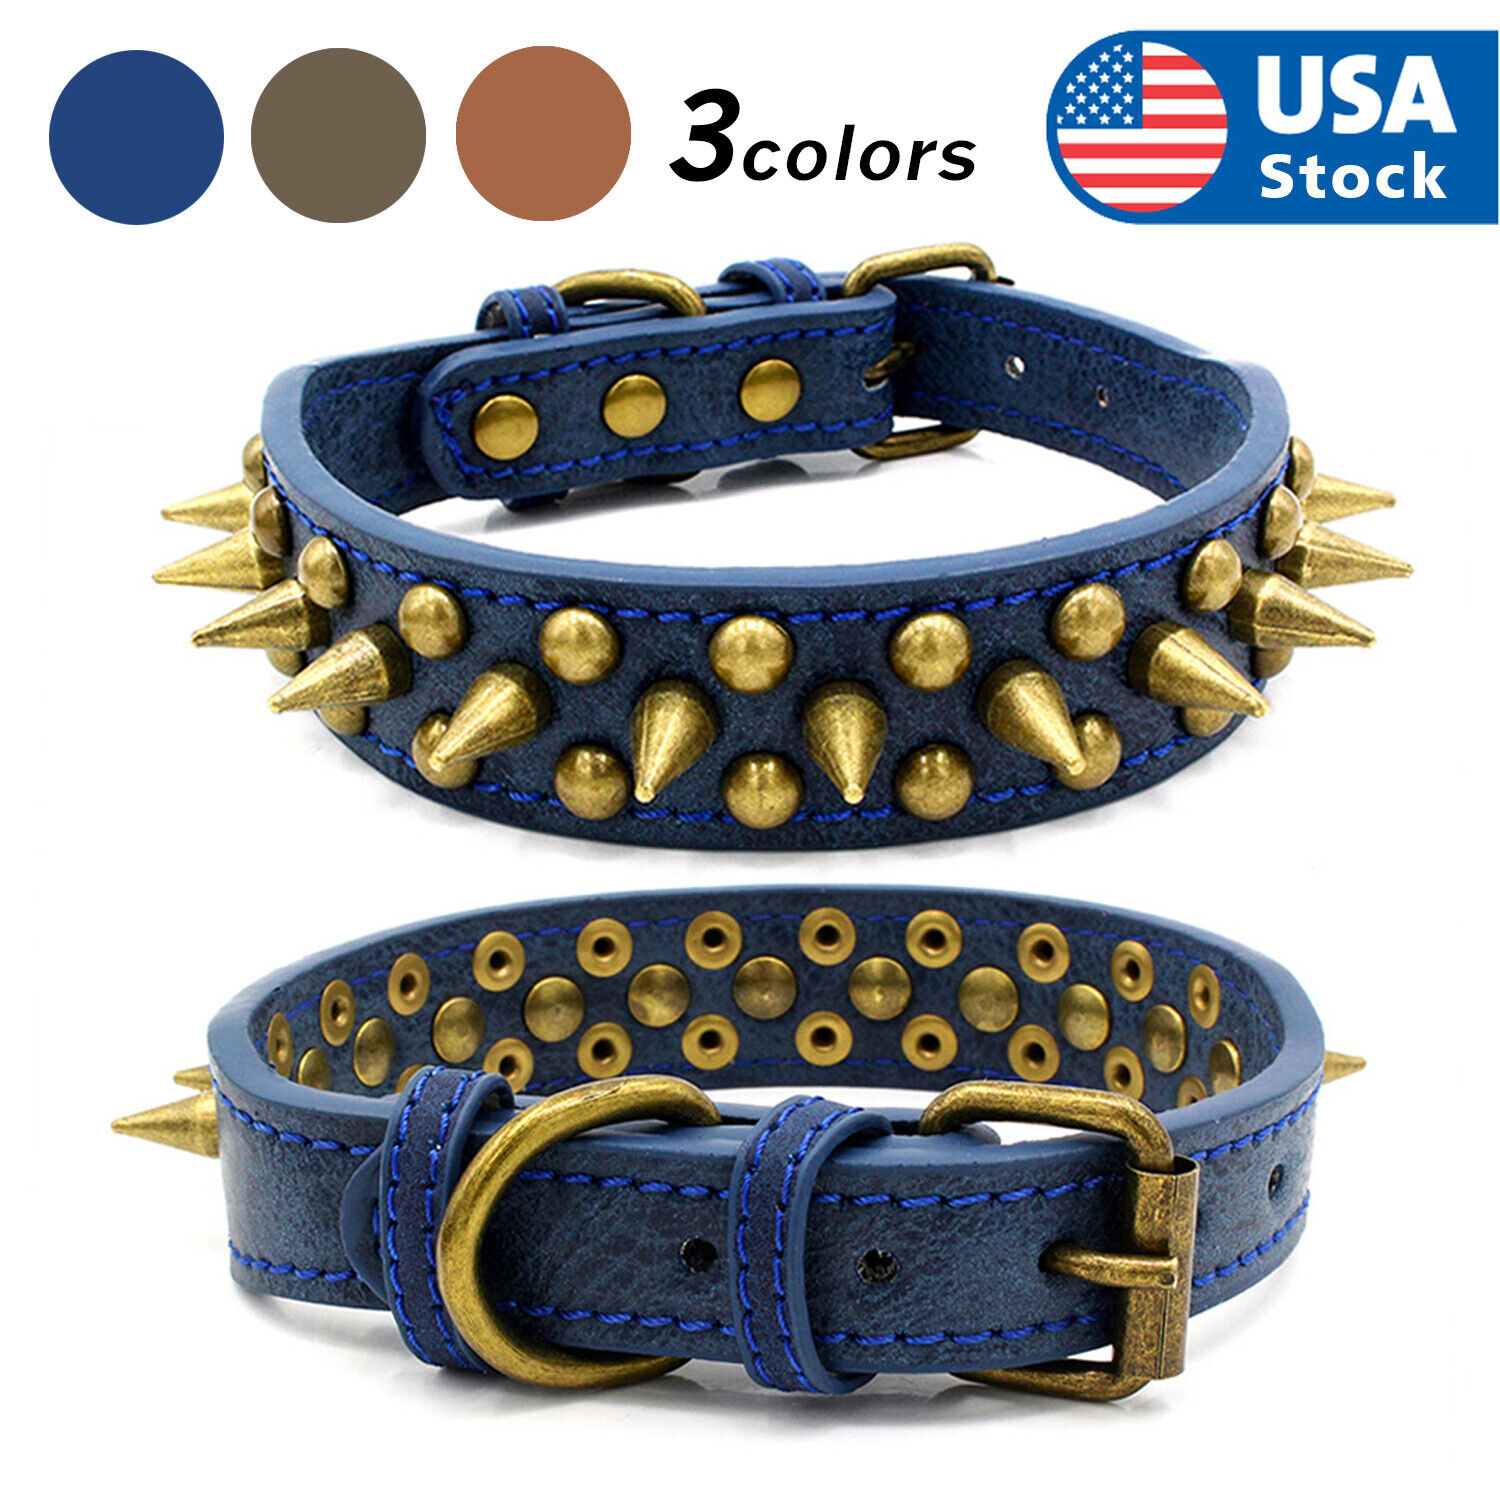 Retro Studded Spiked Rivet Large Dog Pet Leather Collar Pit Bull S-XL Collars